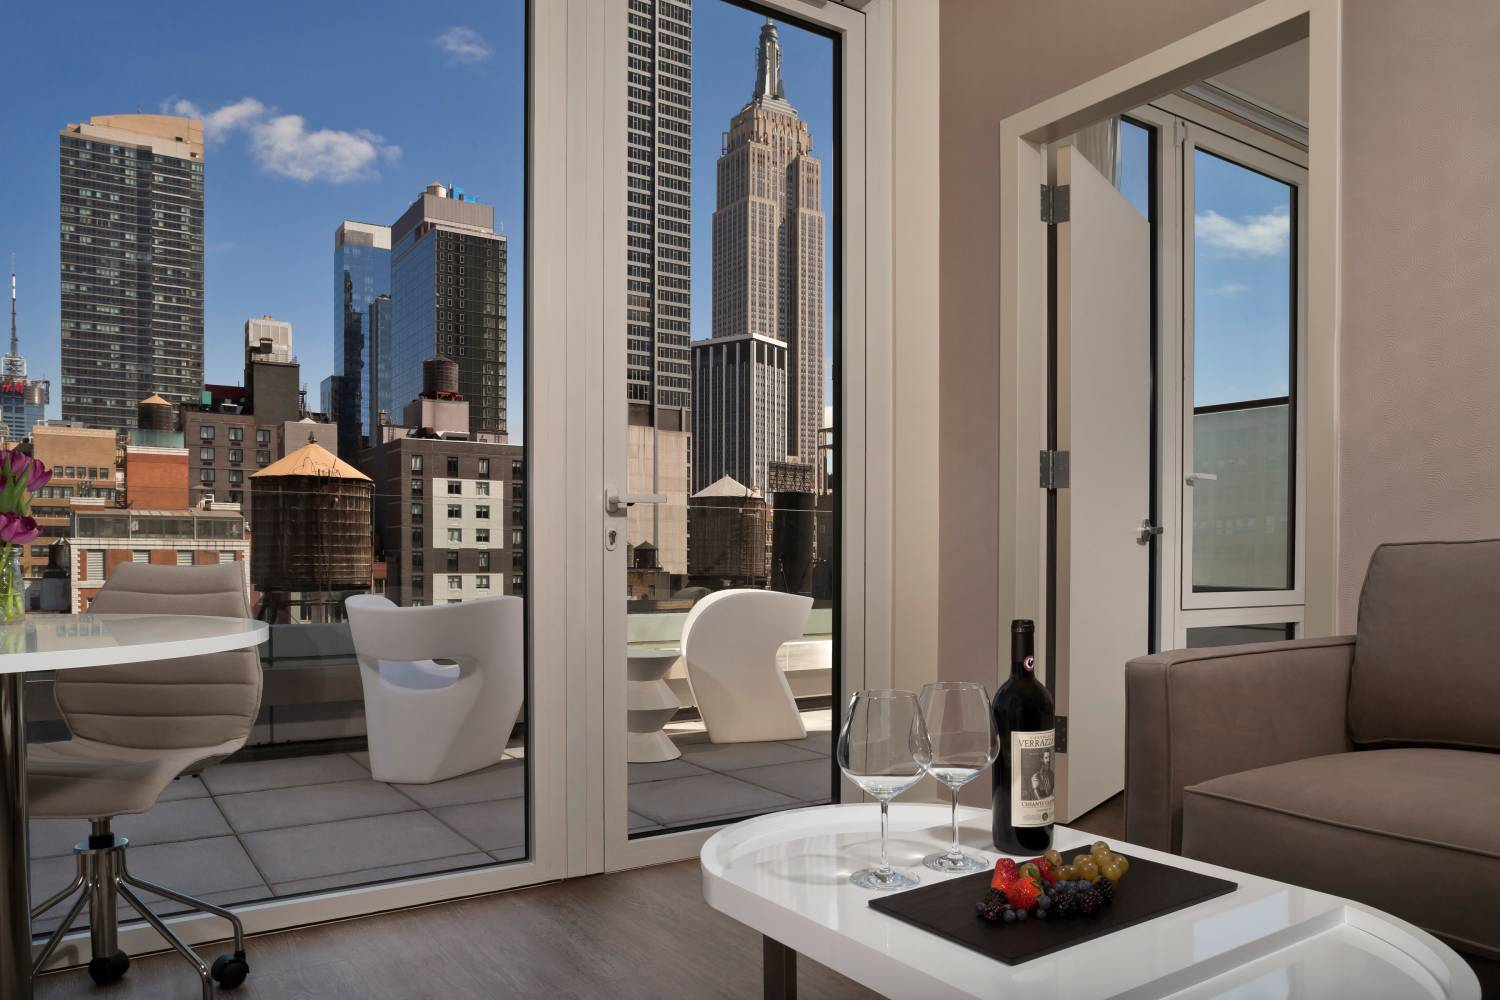 Nyc Hotel Rooms With A View Hotels